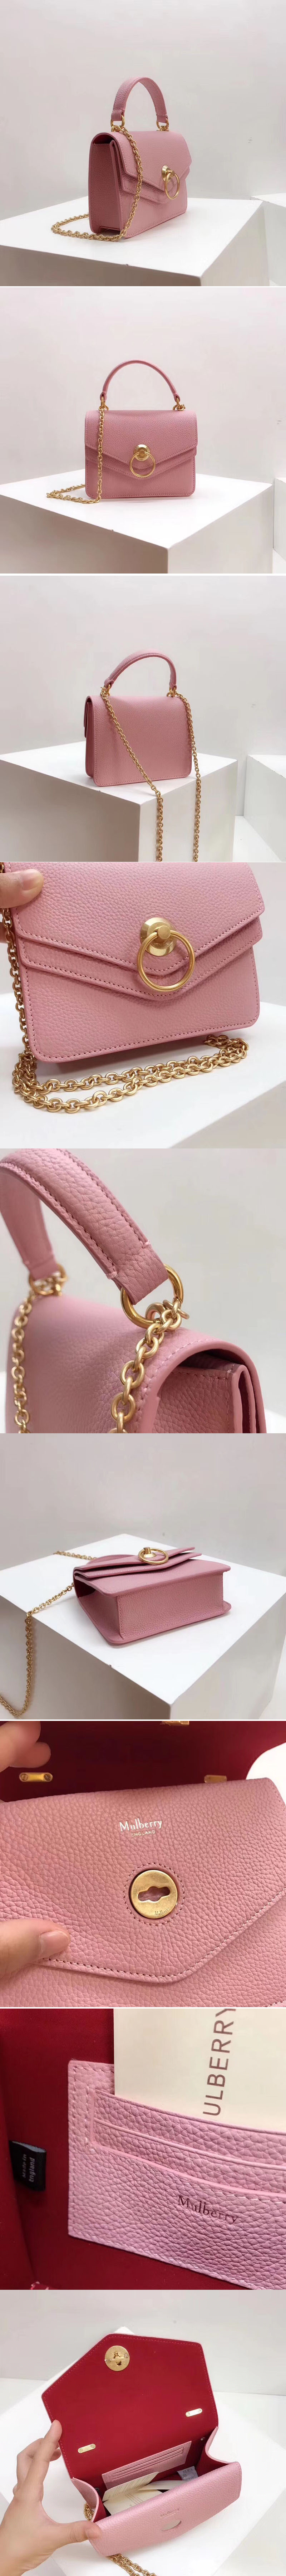 Replica Mulberry Small Harlow Satchel Bags Small Classic Grain Leather Pink